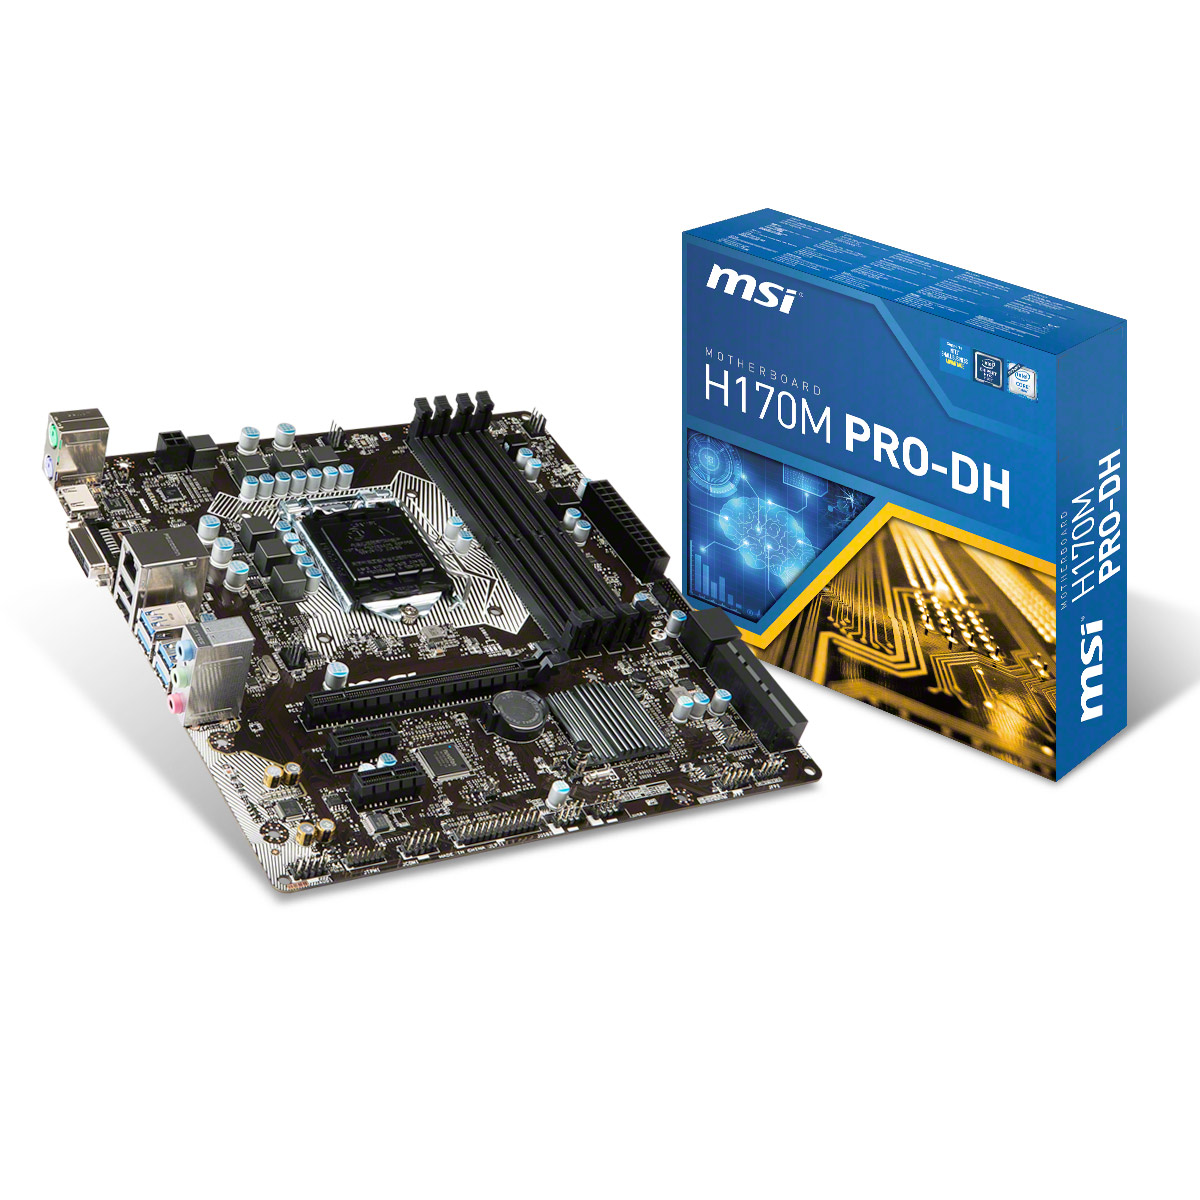 Mainboard MSI H170M PRO-DH Socket 1151 (H170M PRO-DH)